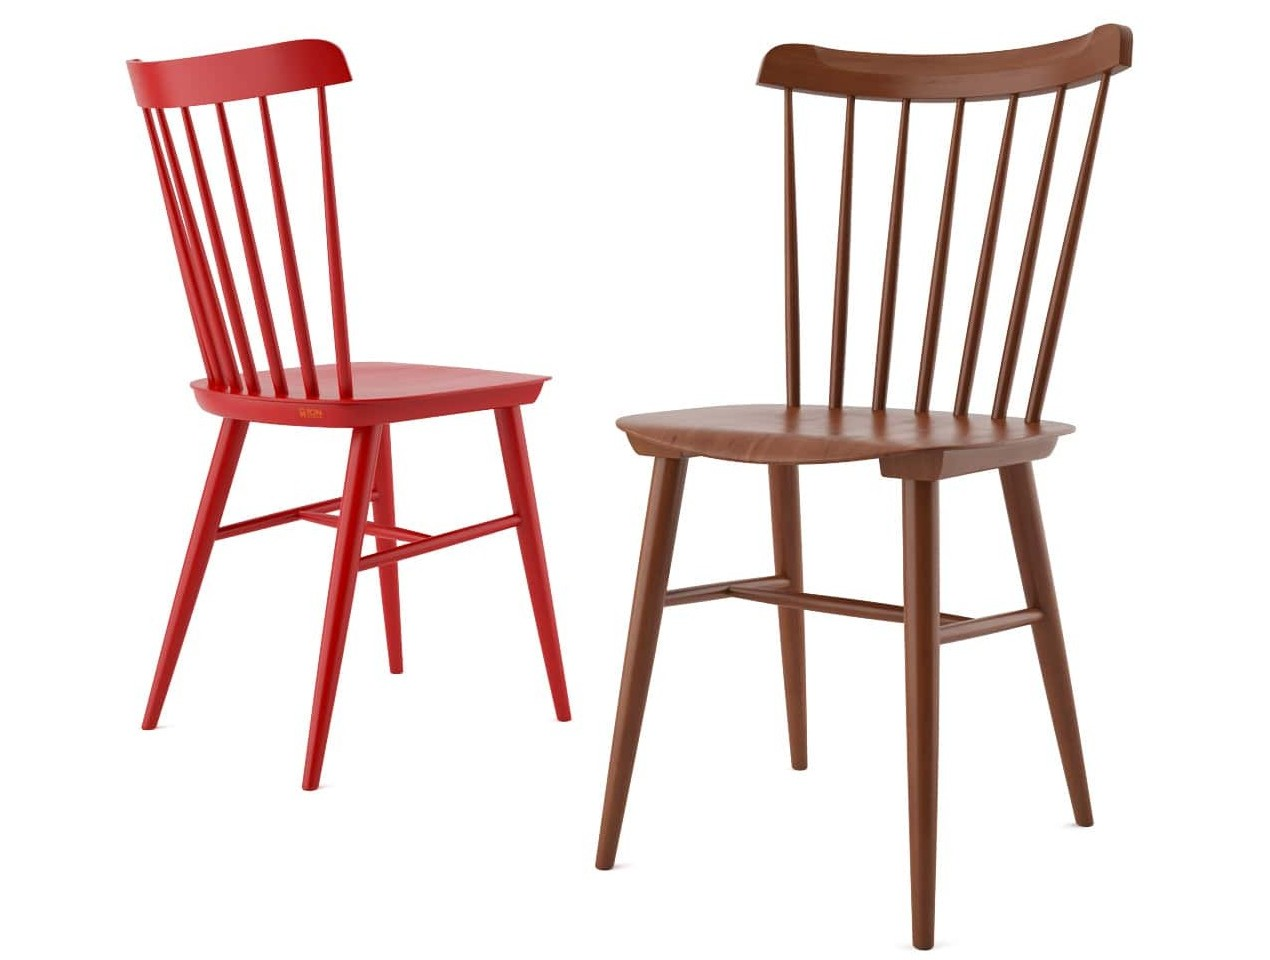 Silla ir nica thonet on contract for Sillas famosas